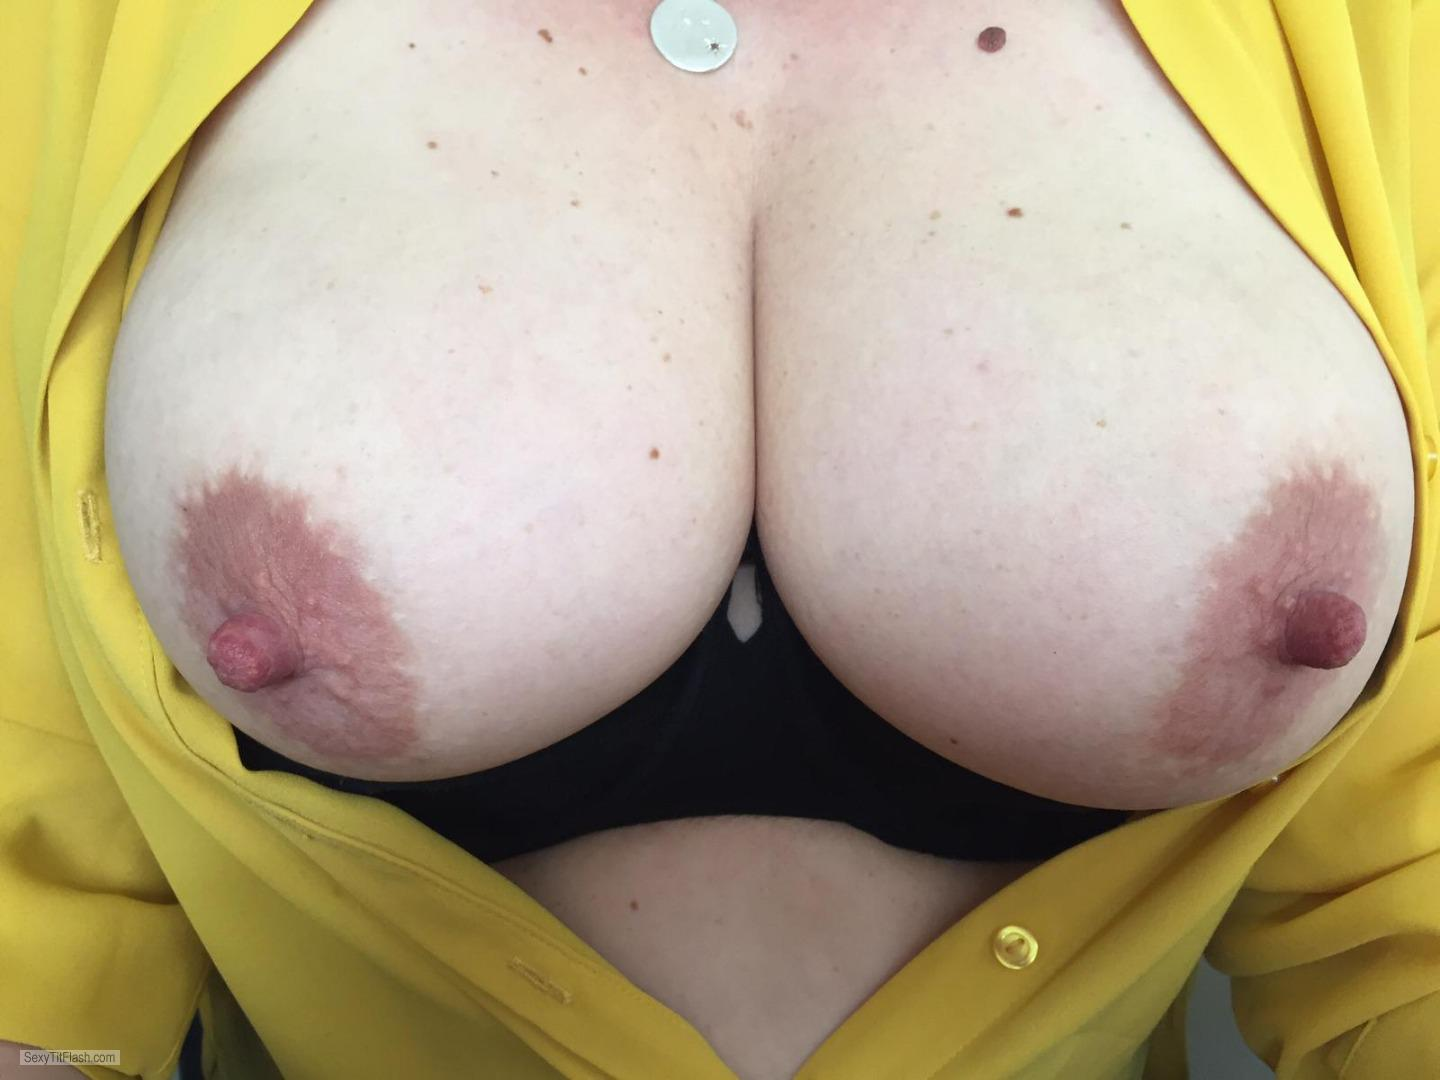 Tit Flash: Wife's Big Tits - Big N Bare from United Kingdom